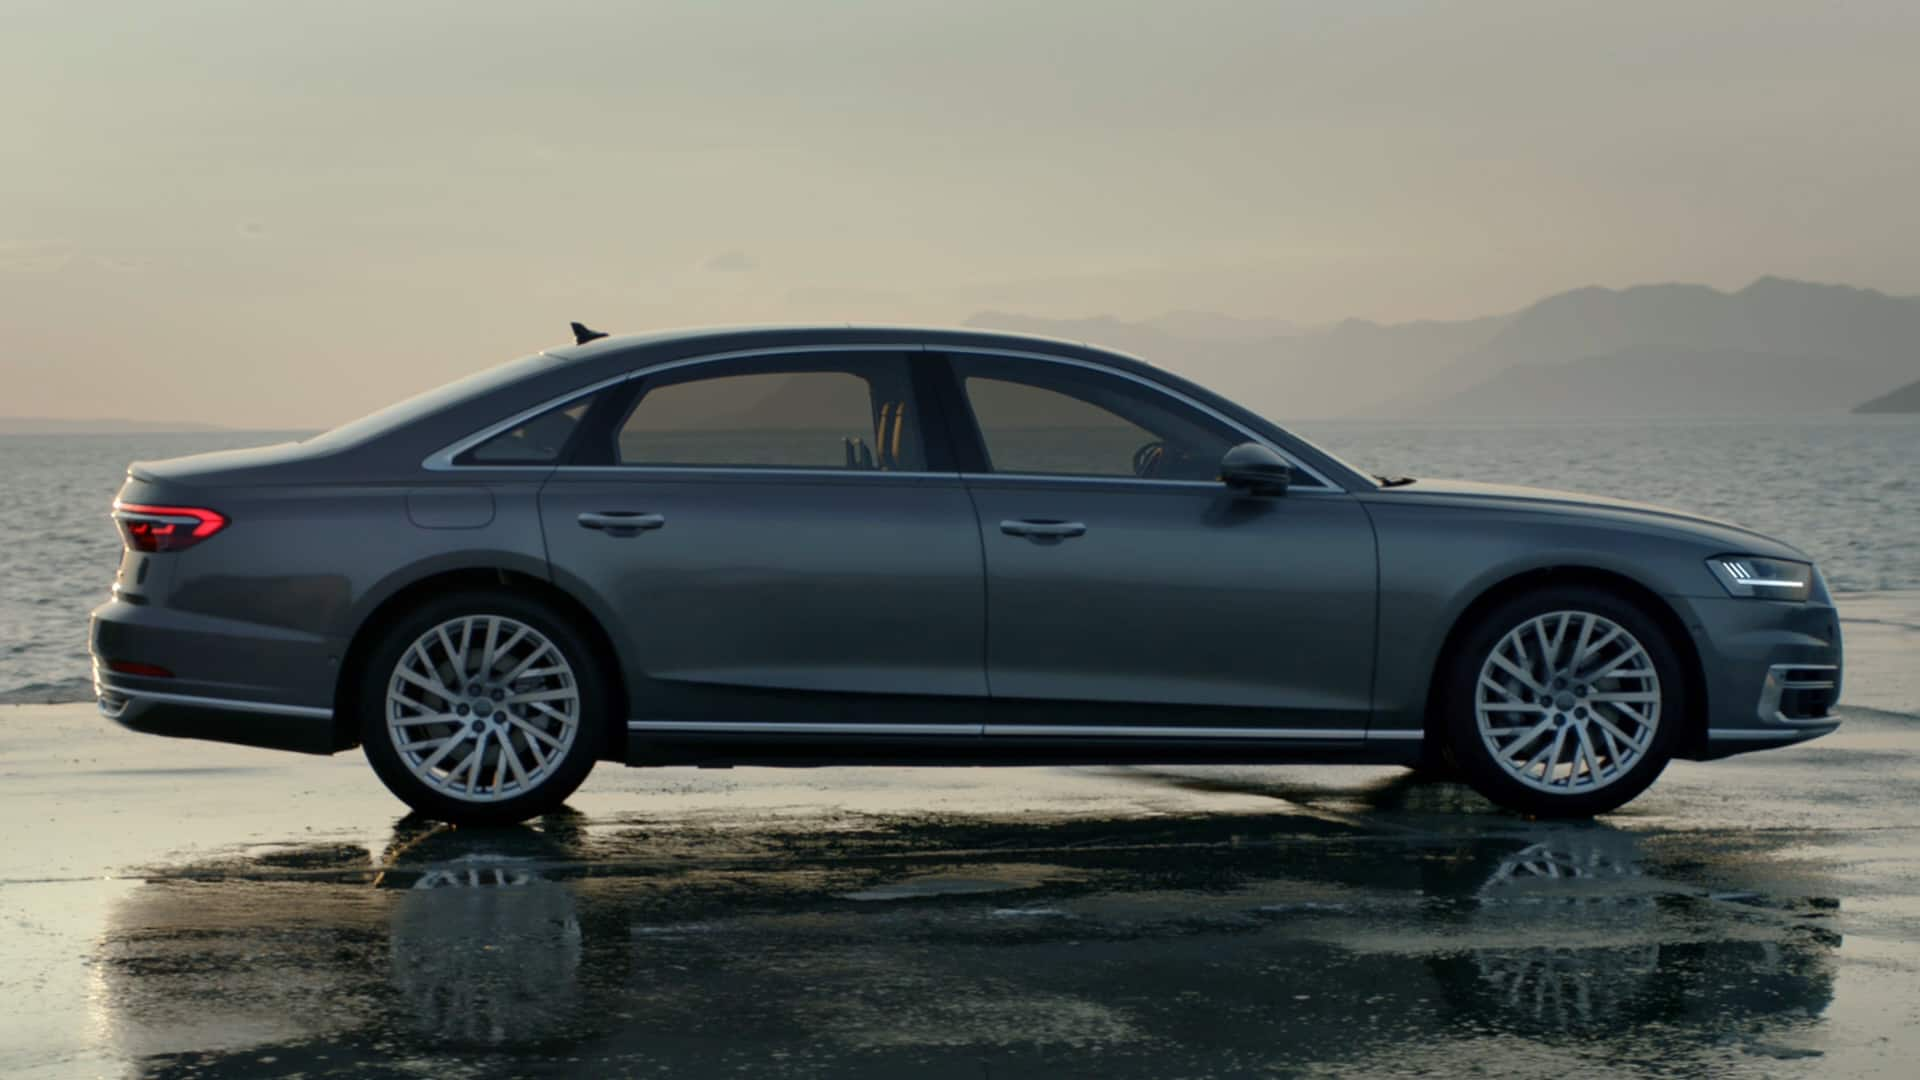 The new Audi A8 L, side view.